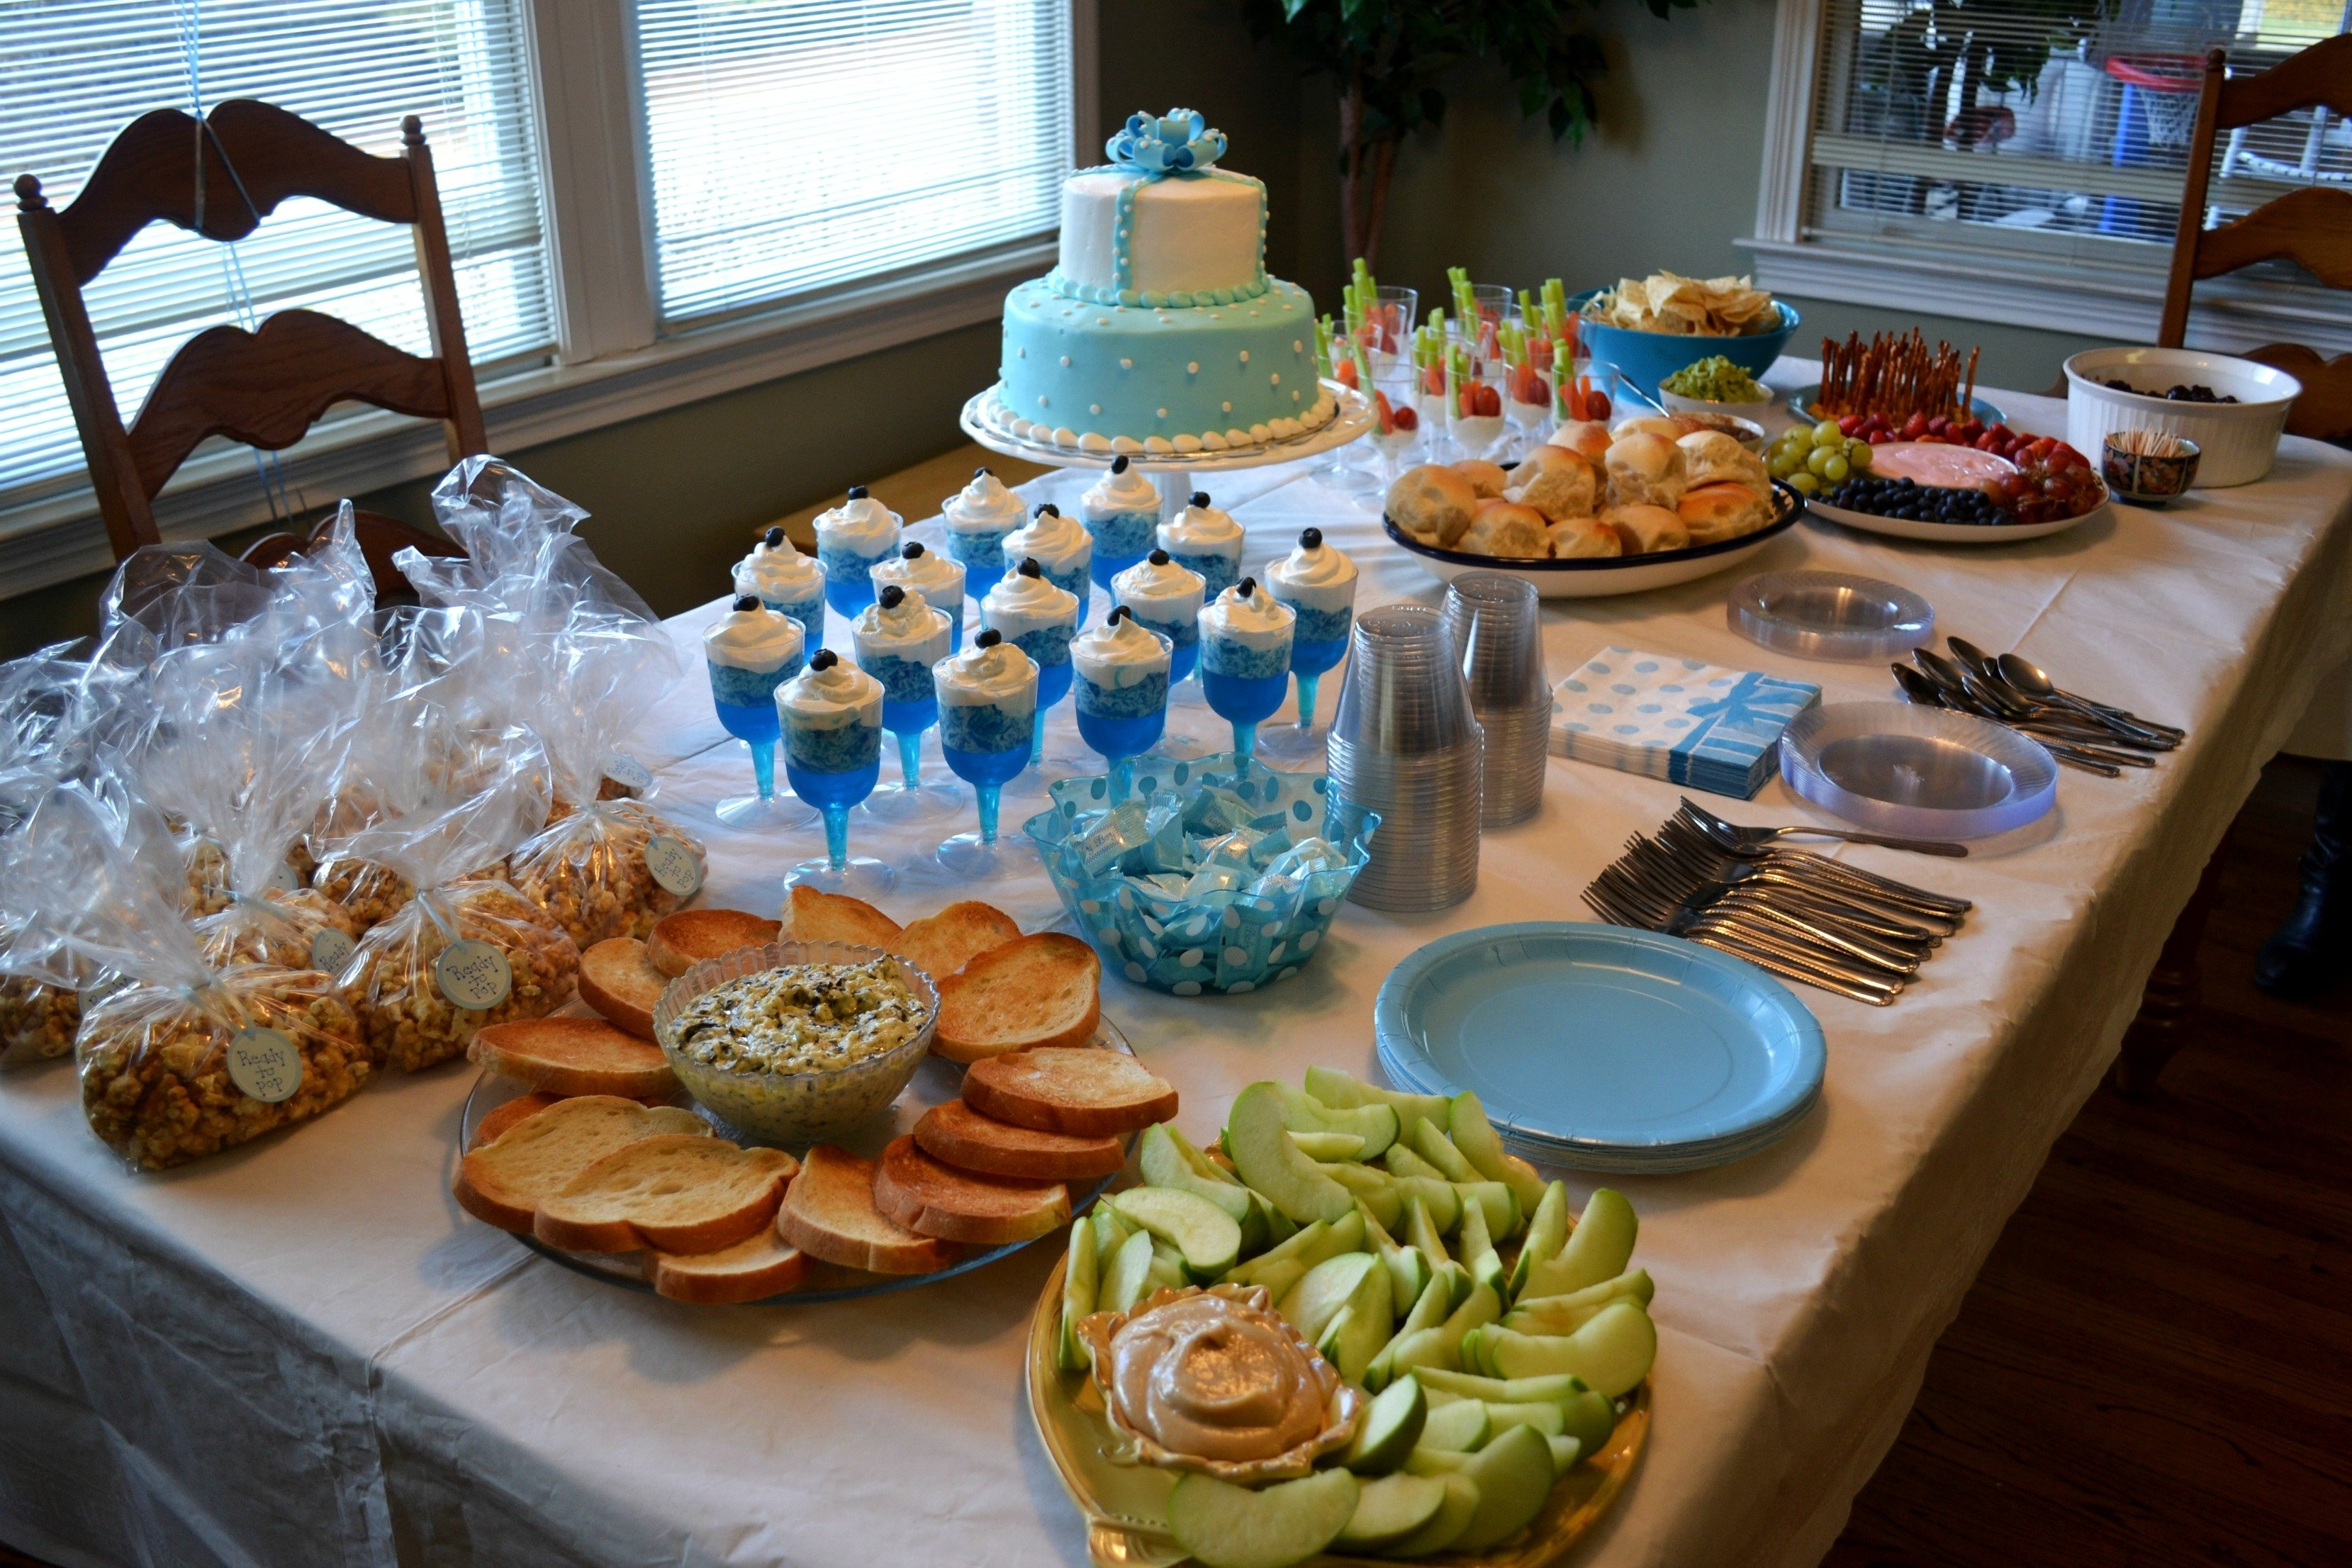 10 Unique Summer Baby Shower Food Ideas surprising baby shower lunchdeas food for girl on budget uk boy 1 2021